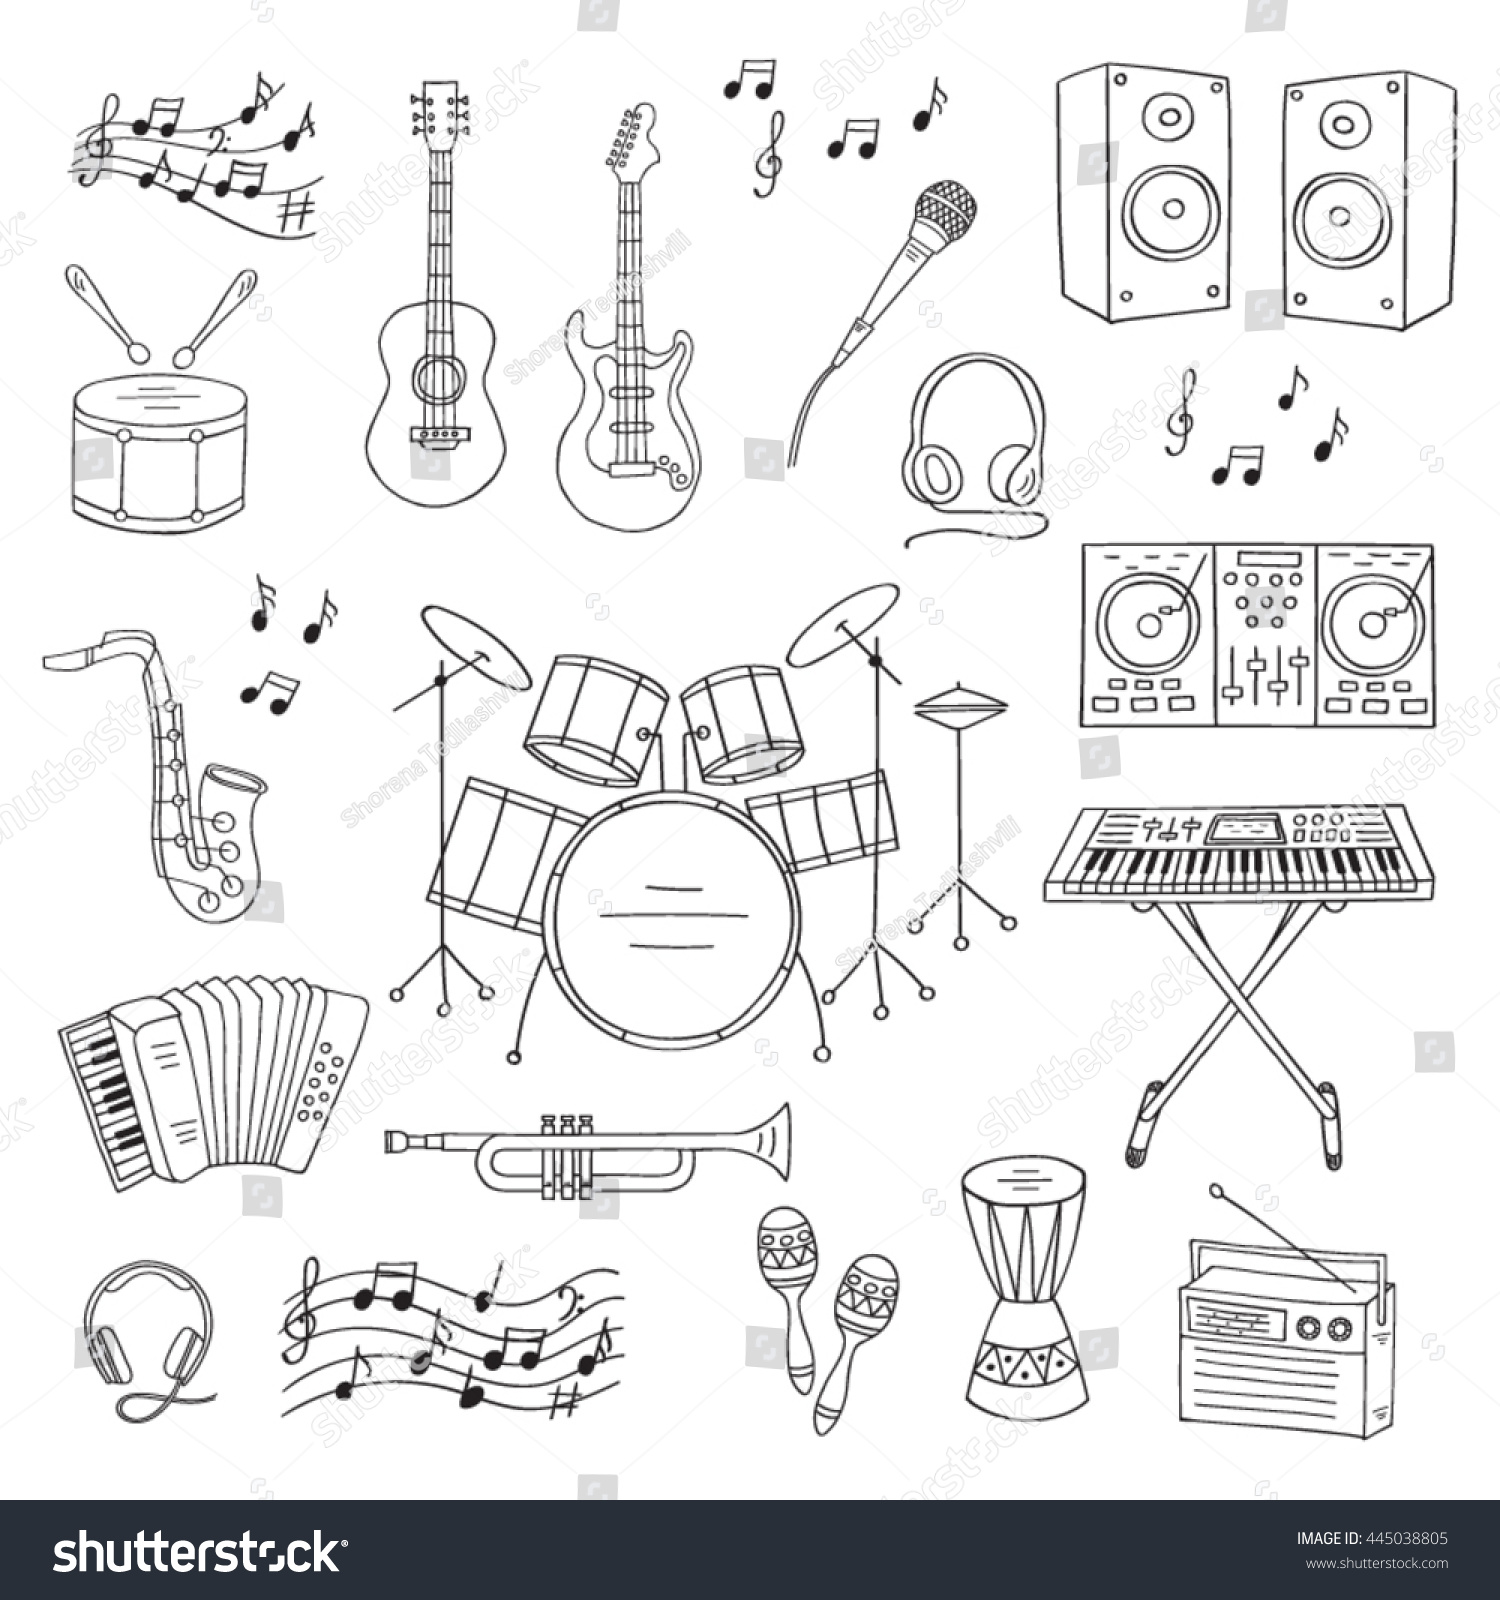 Music icon set vector illustrations hand stock vector 445038805 music icon set vector illustrations hand drawn doodle musical instruments and symbols guitar drum biocorpaavc Gallery